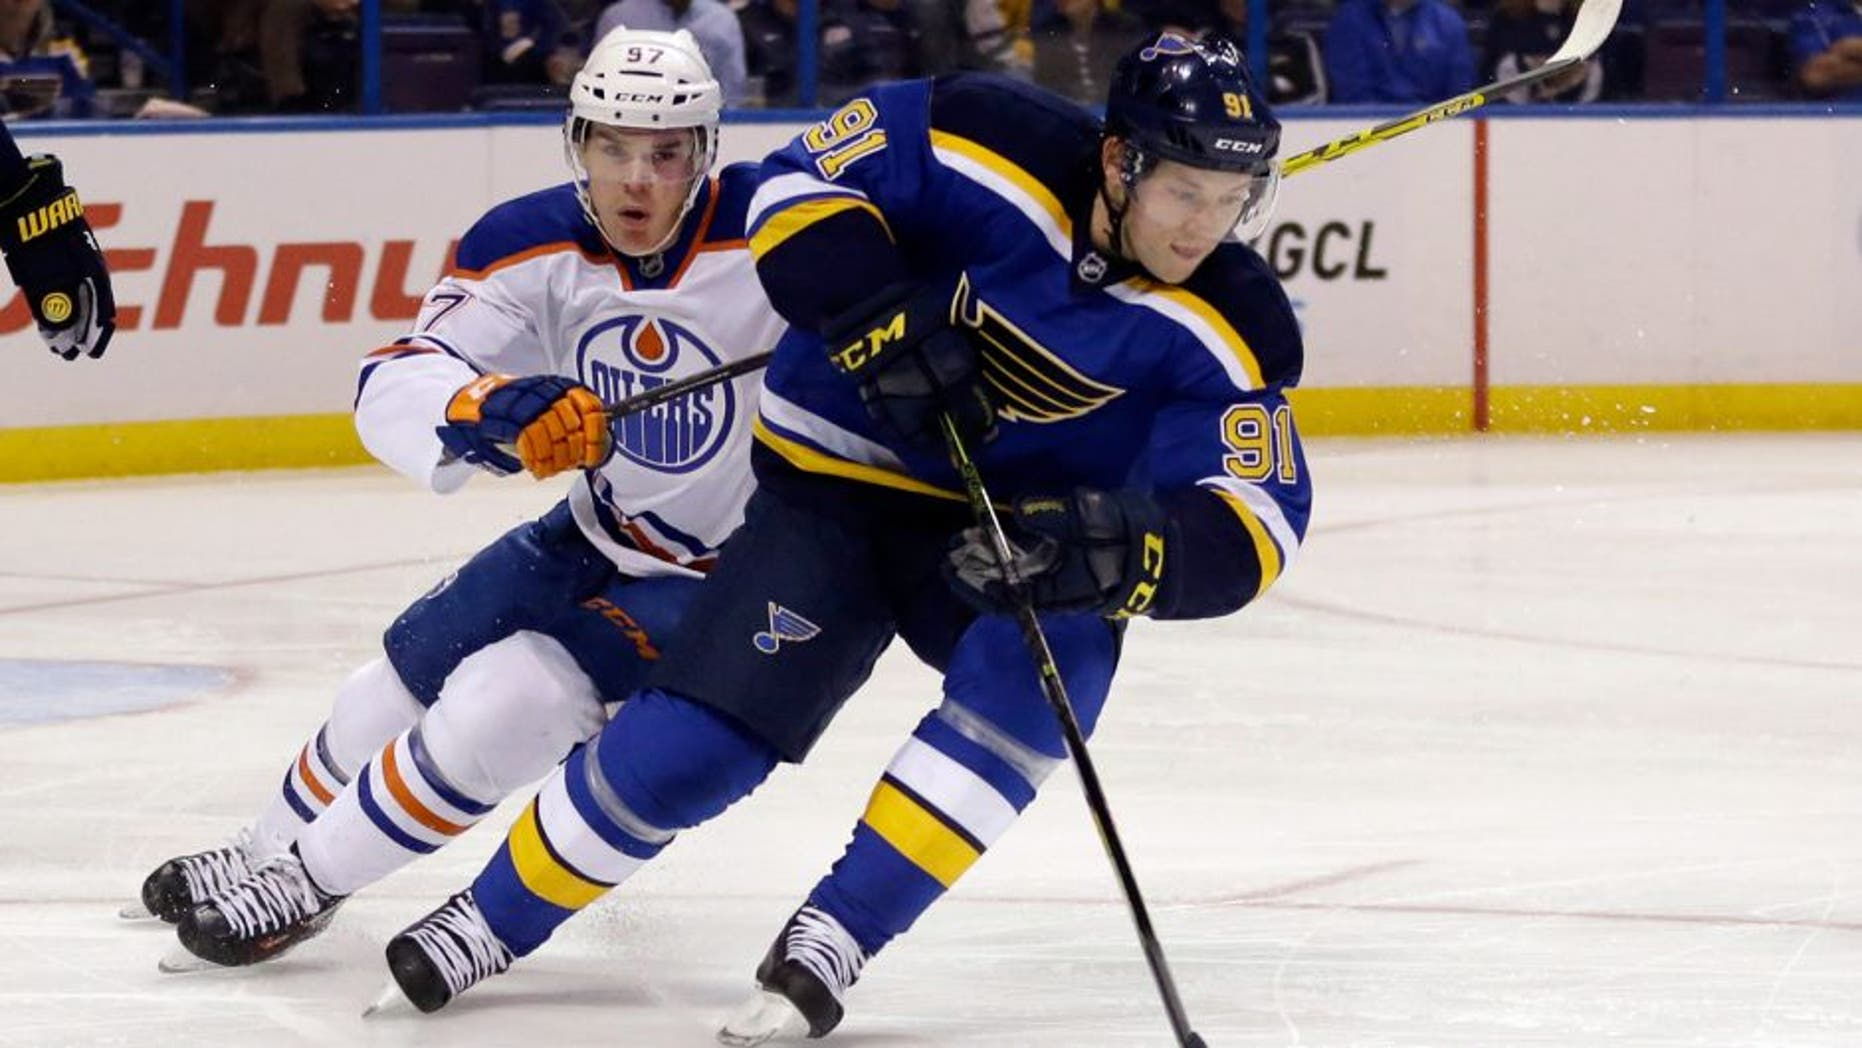 St. Louis Blues' Vladimir Tarasenko, right, of Russia, controls the puck as Edmonton Oilers' Connor McDavid, left, pursues during the first period of an NHL hockey game Thursday, Oct. 8, 2015, in St. Louis. (AP Photo/Jeff Roberson)